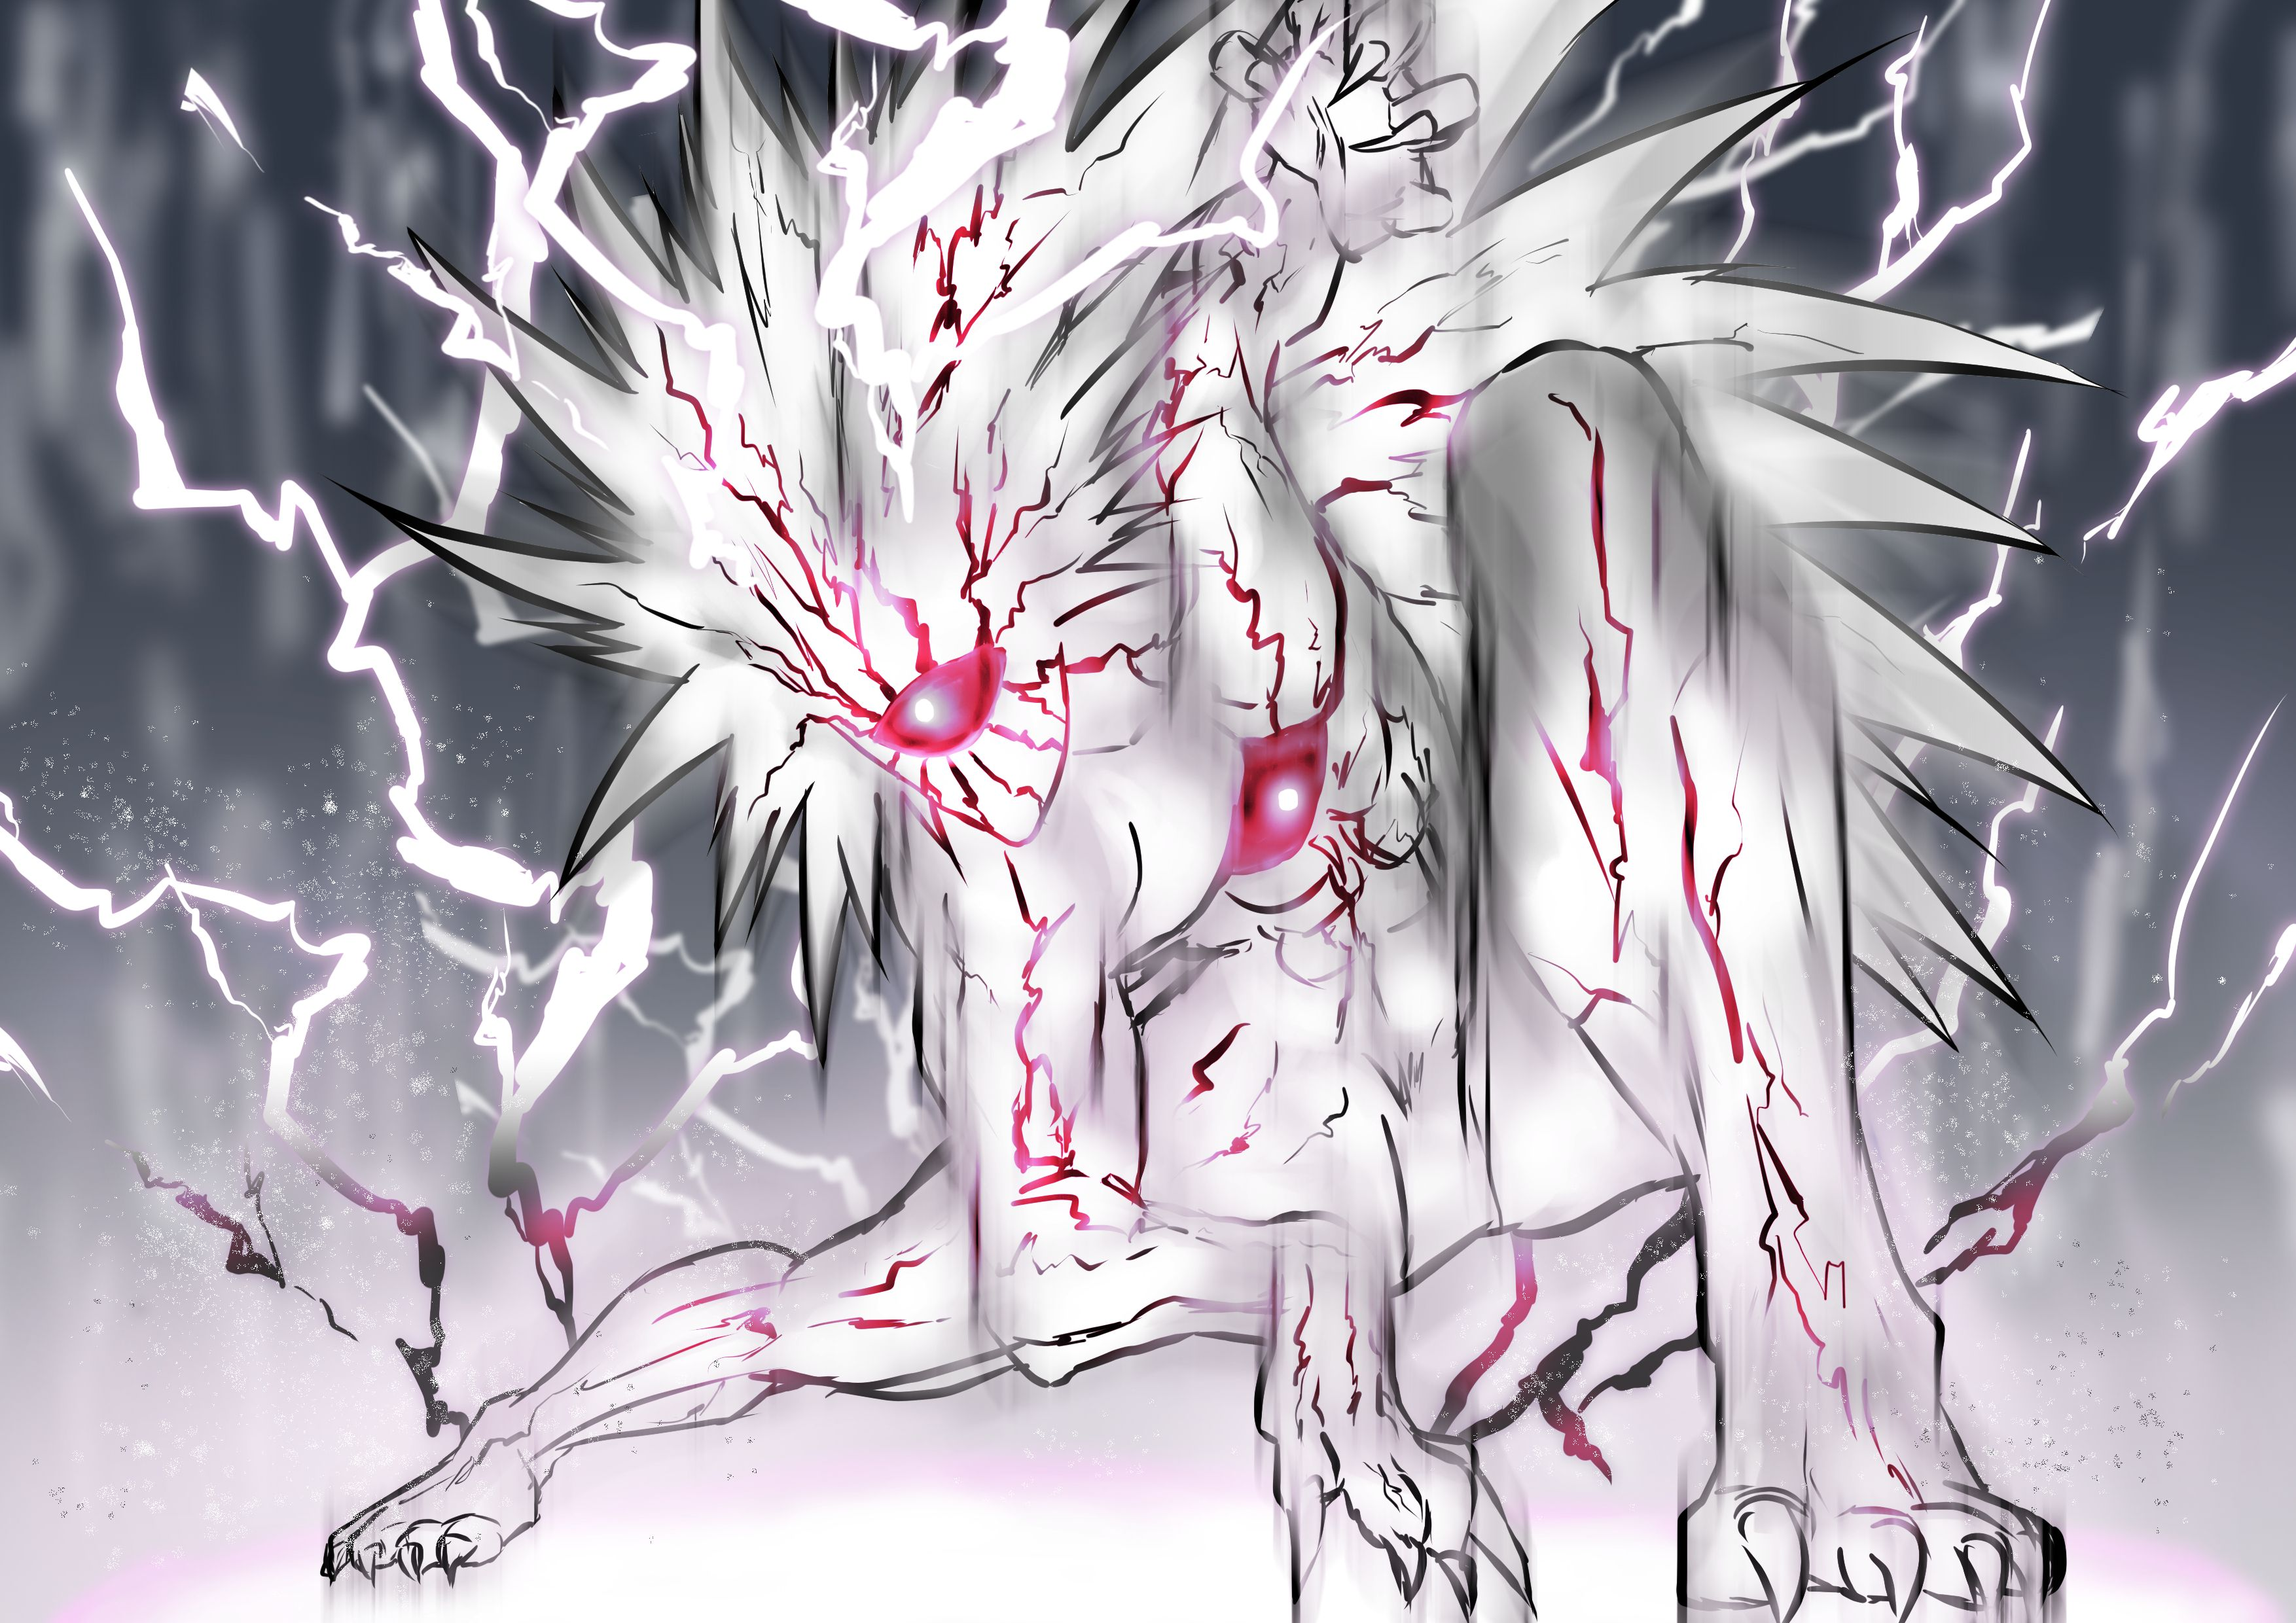 15 Lord Boros One Punch Man Hd Wallpapers Backgrounds